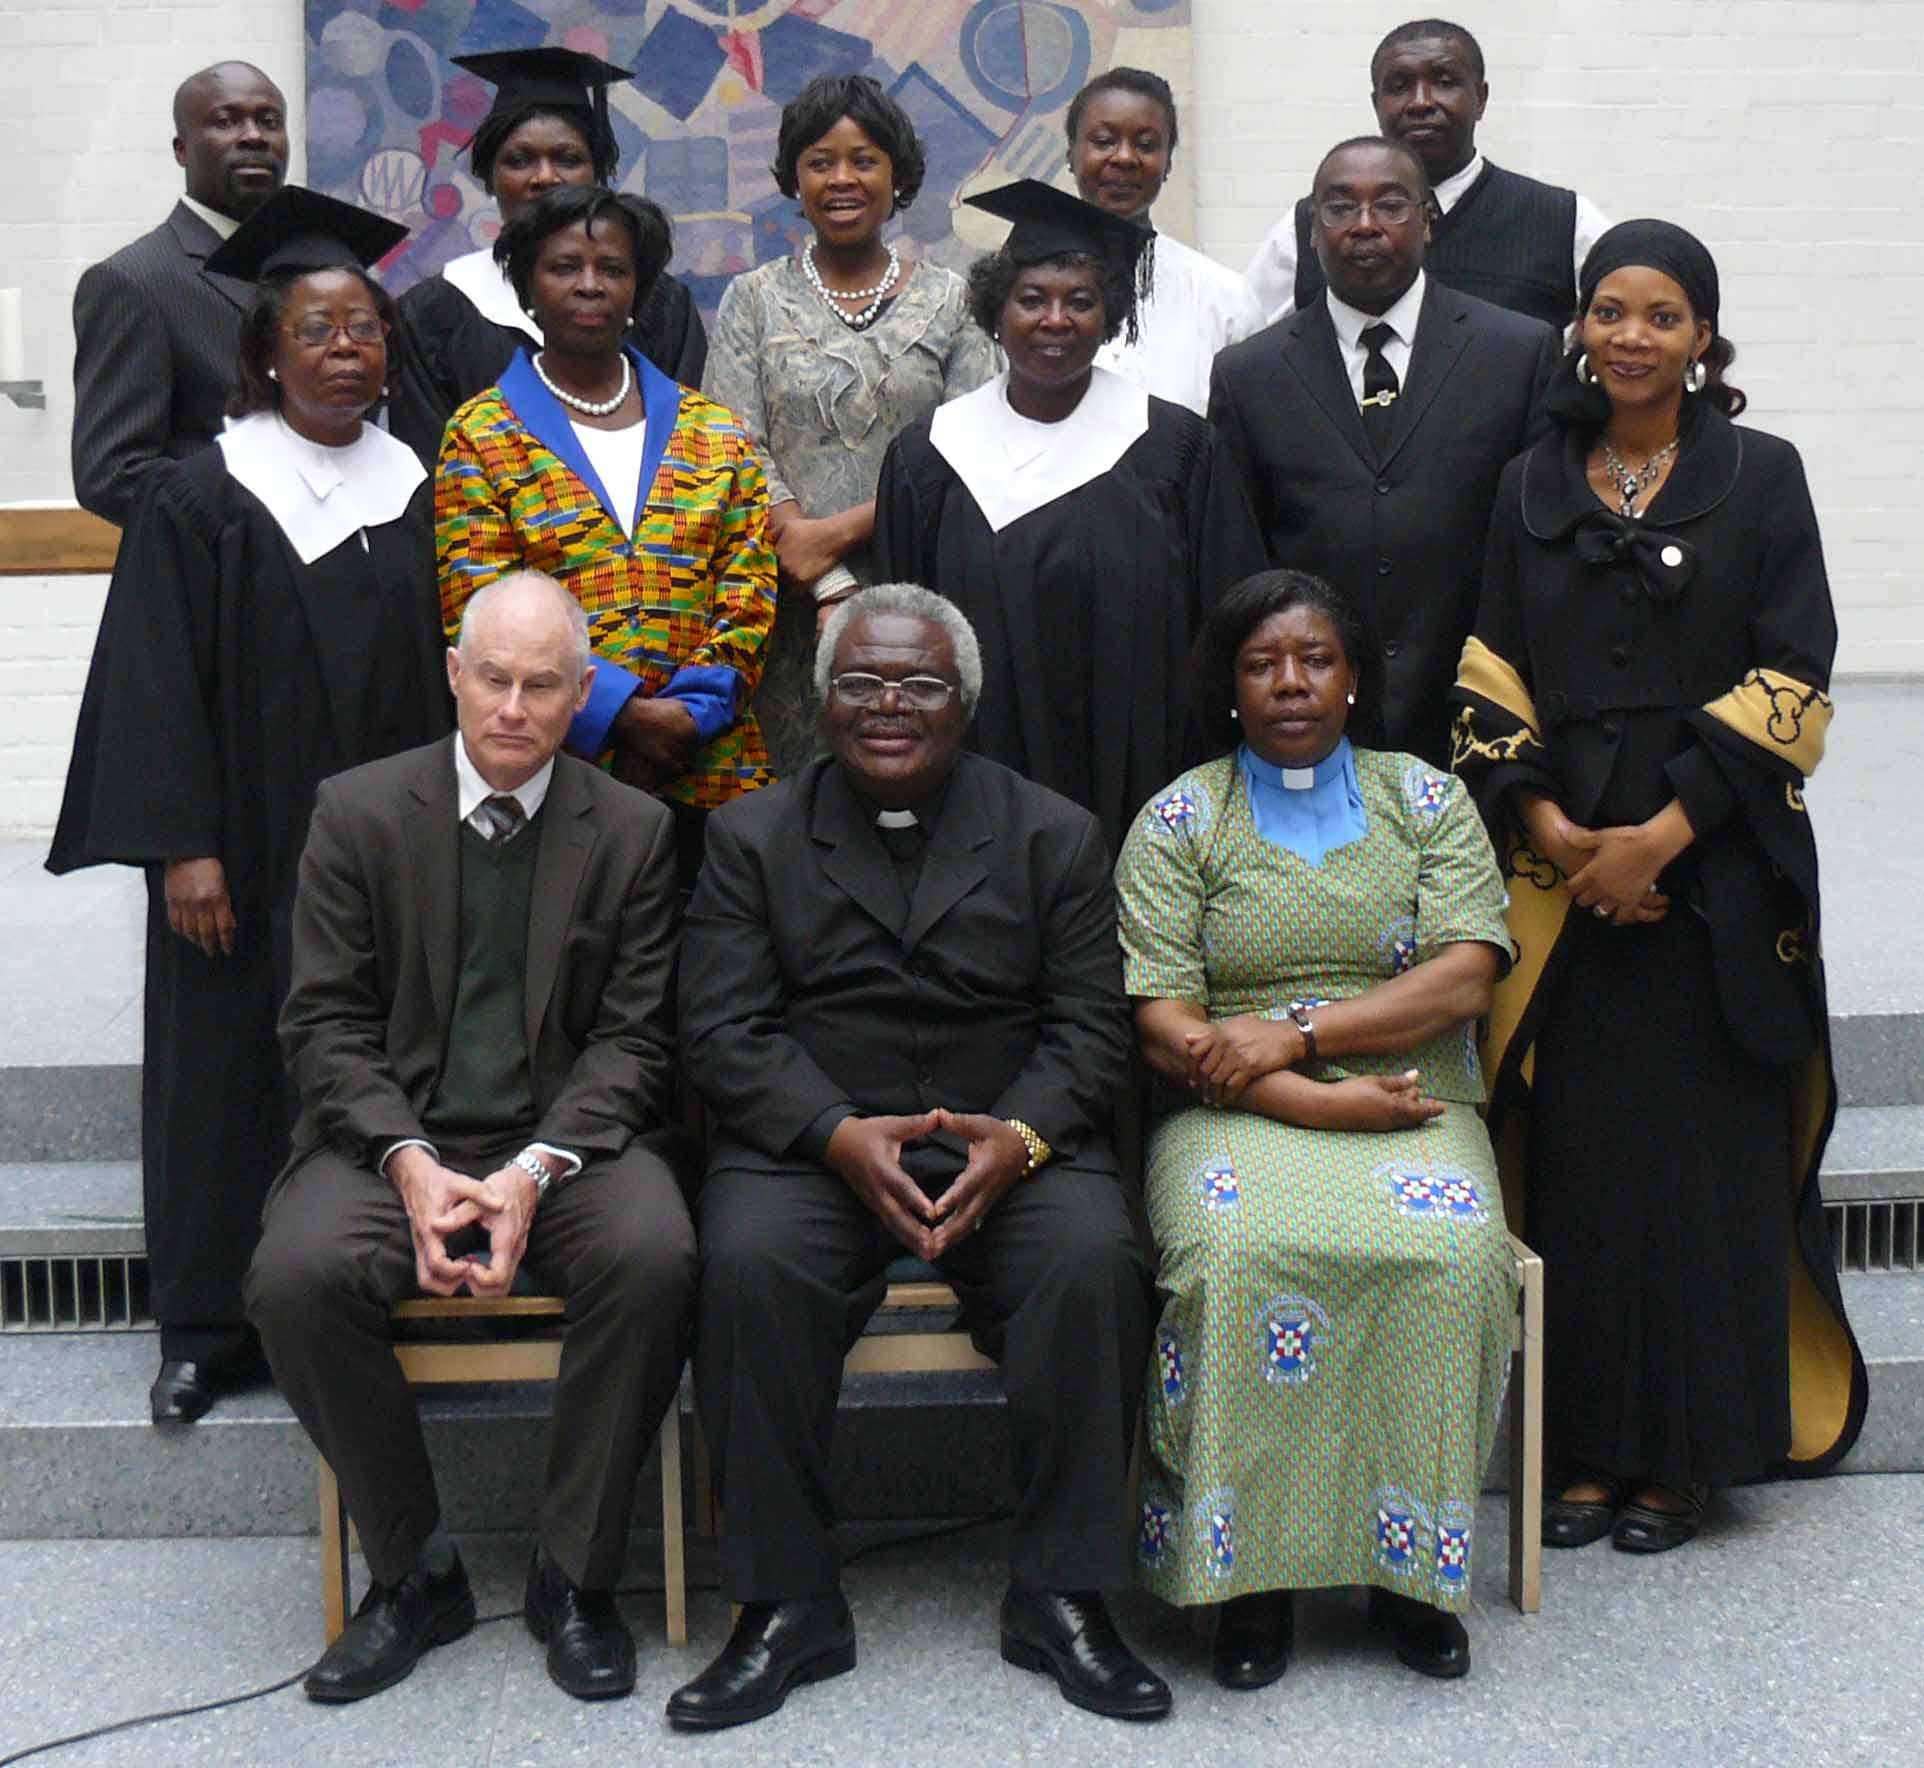 Choir members with the Moderator during his visit to Germany